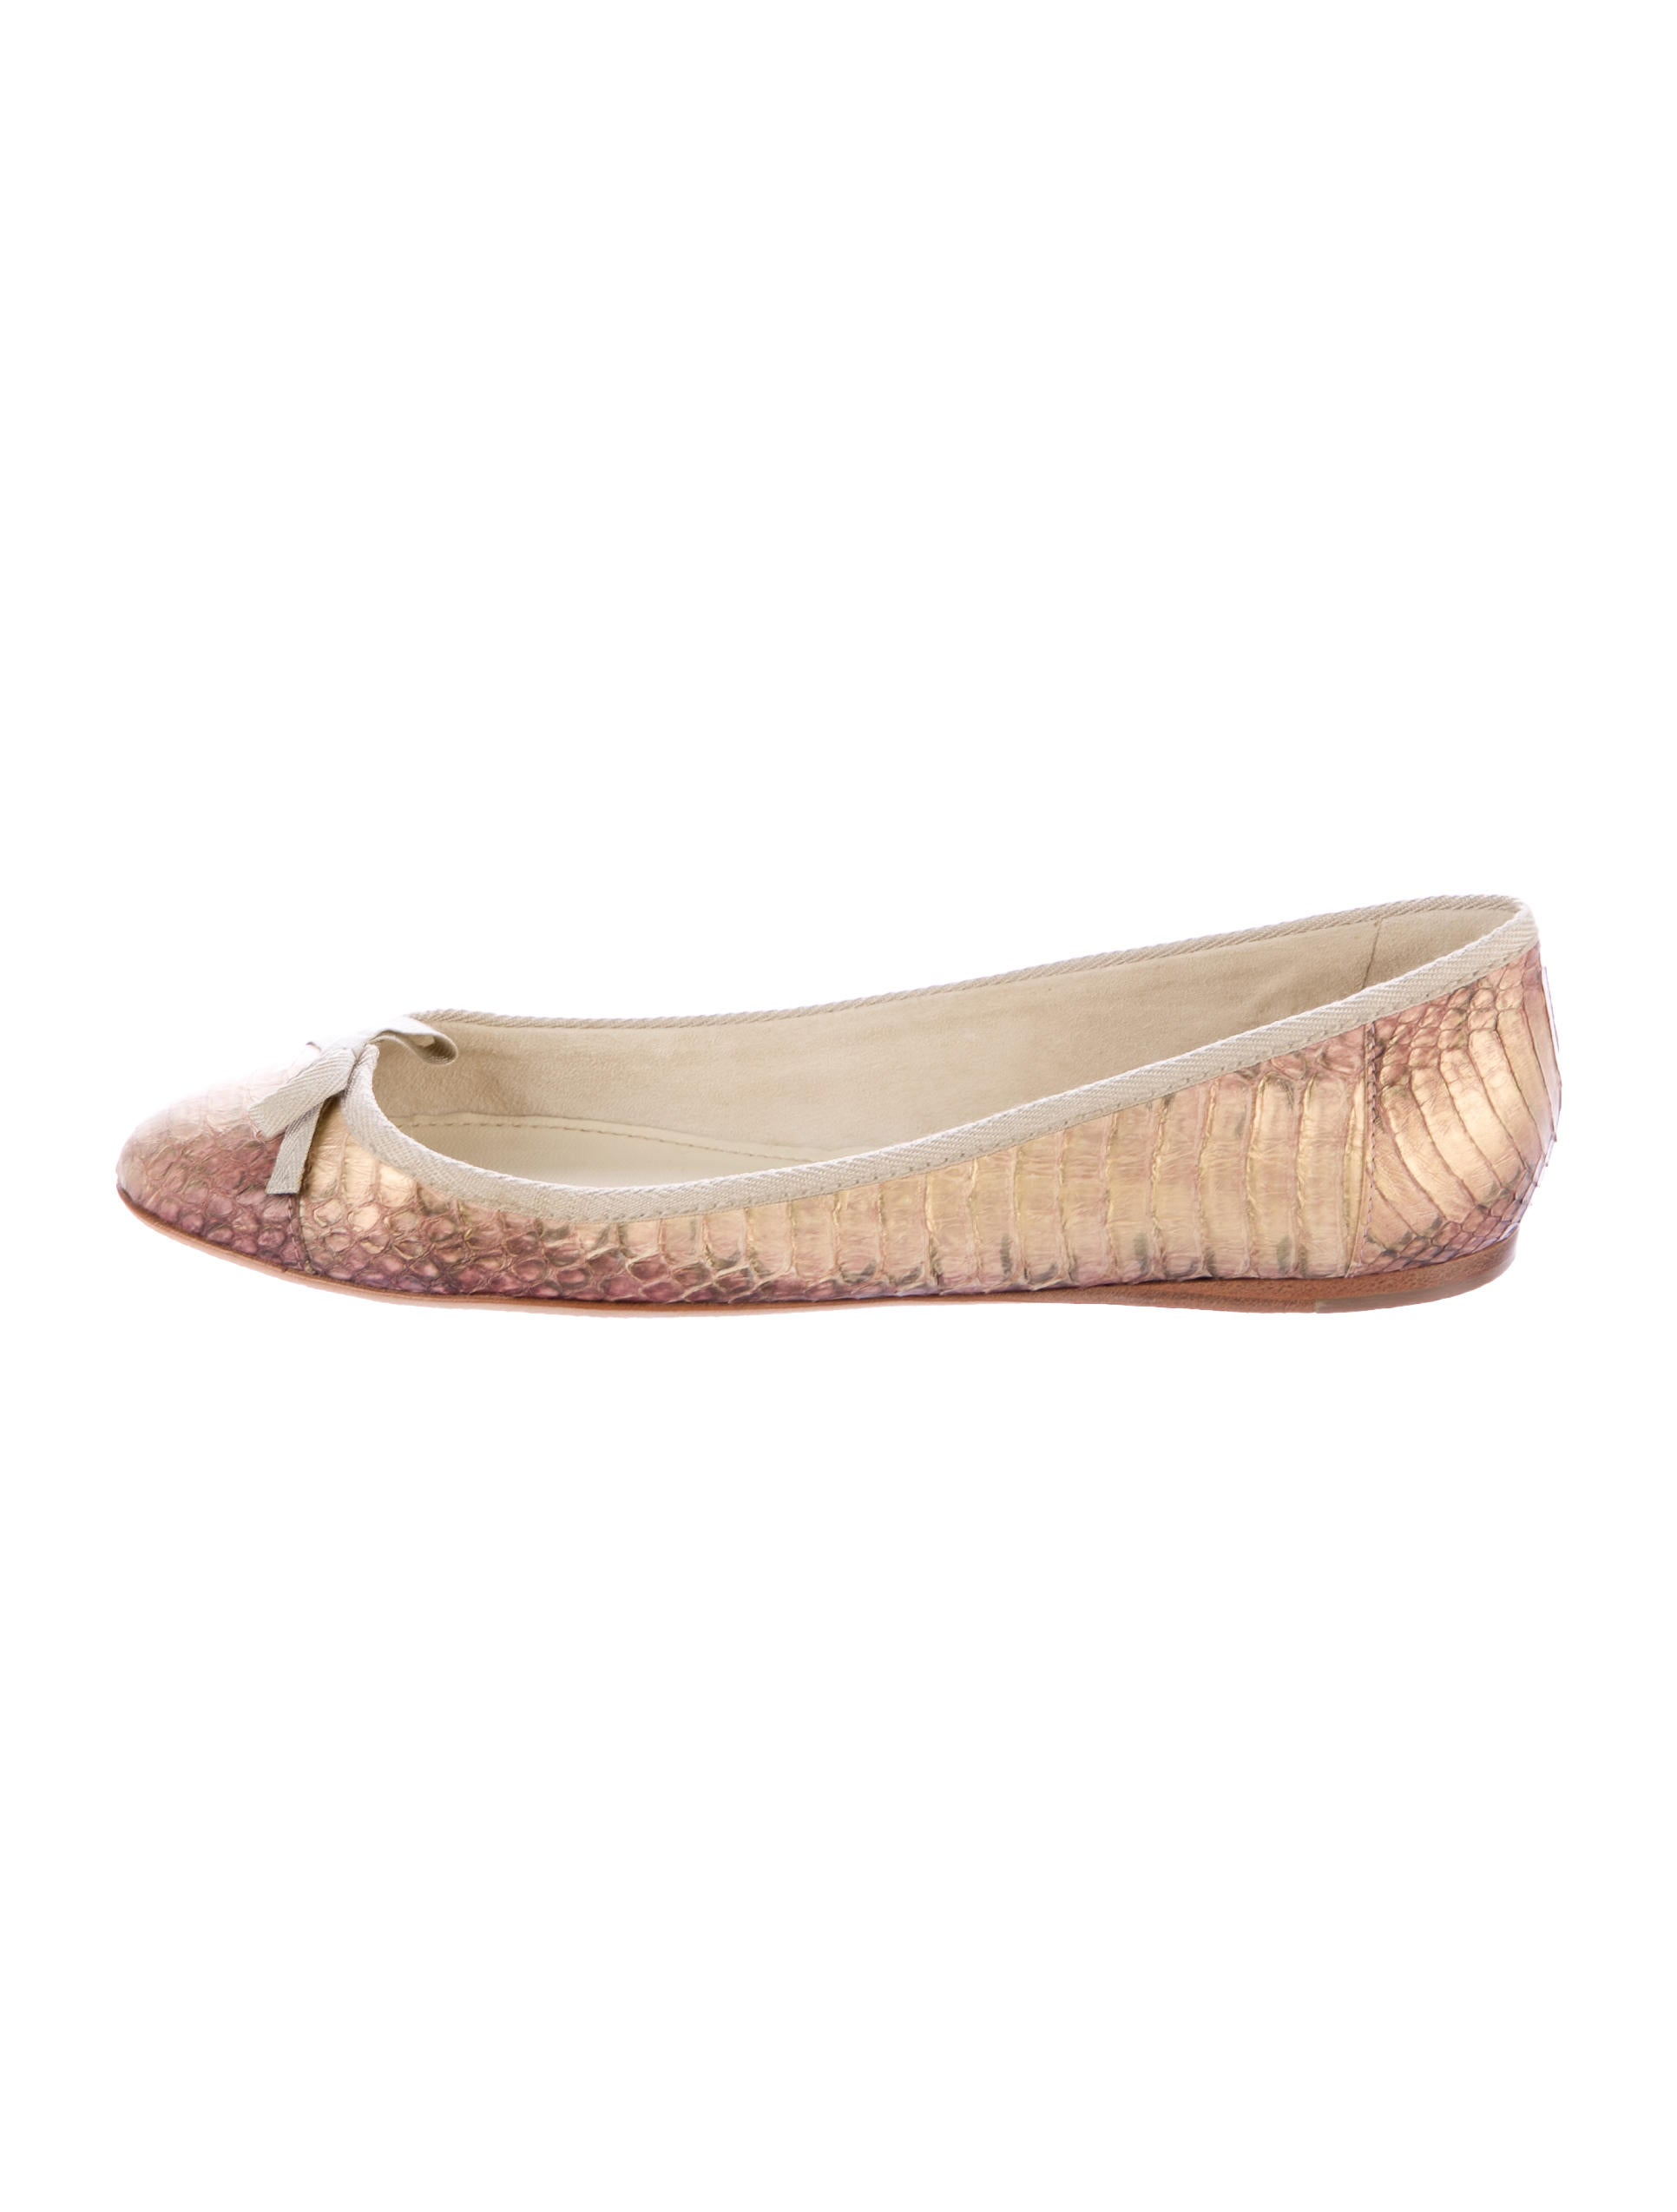 Miu Miu Snakeskin Bow Flats footlocker pictures for sale cheap sale footlocker free shipping limited edition sale very cheap cheap sale best sale mdwdWaIQy5